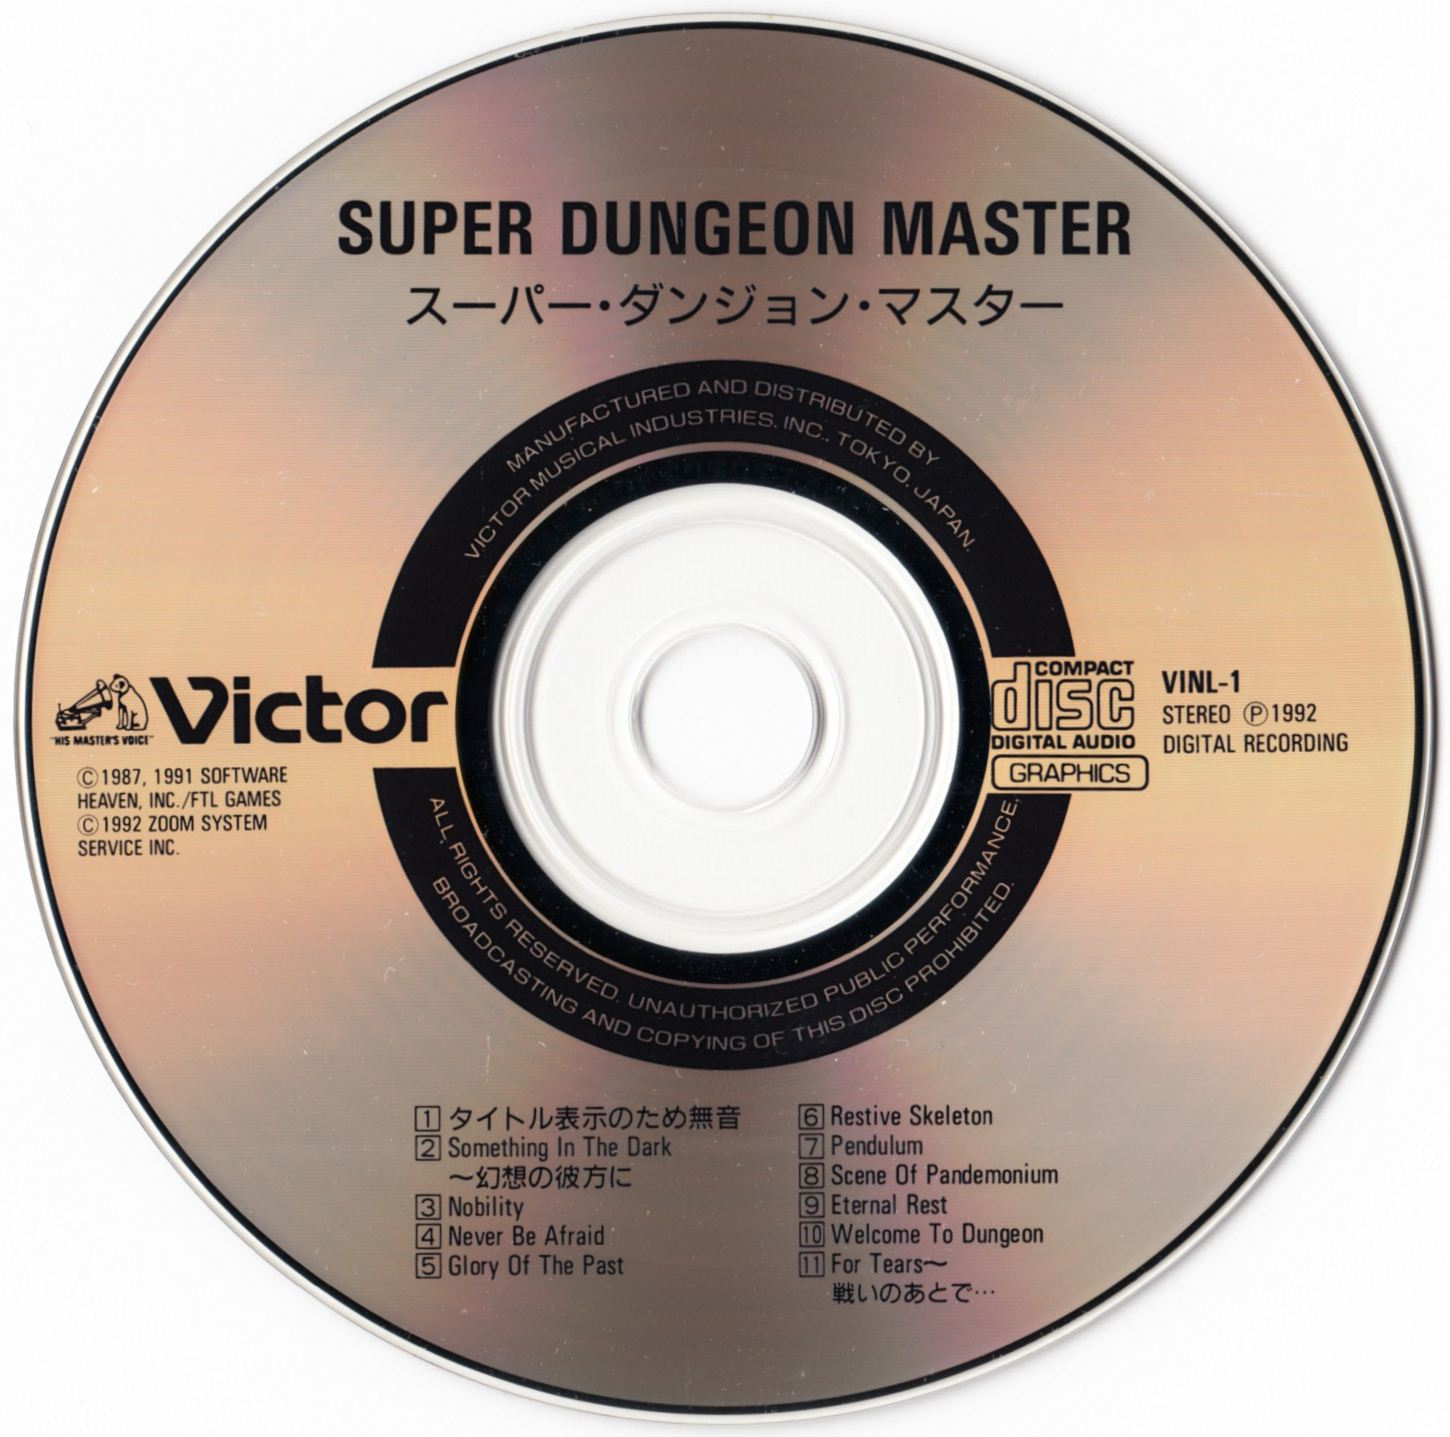 Audio CD - Super Dungeon Master - JP - Compact Disc - Front - Scan